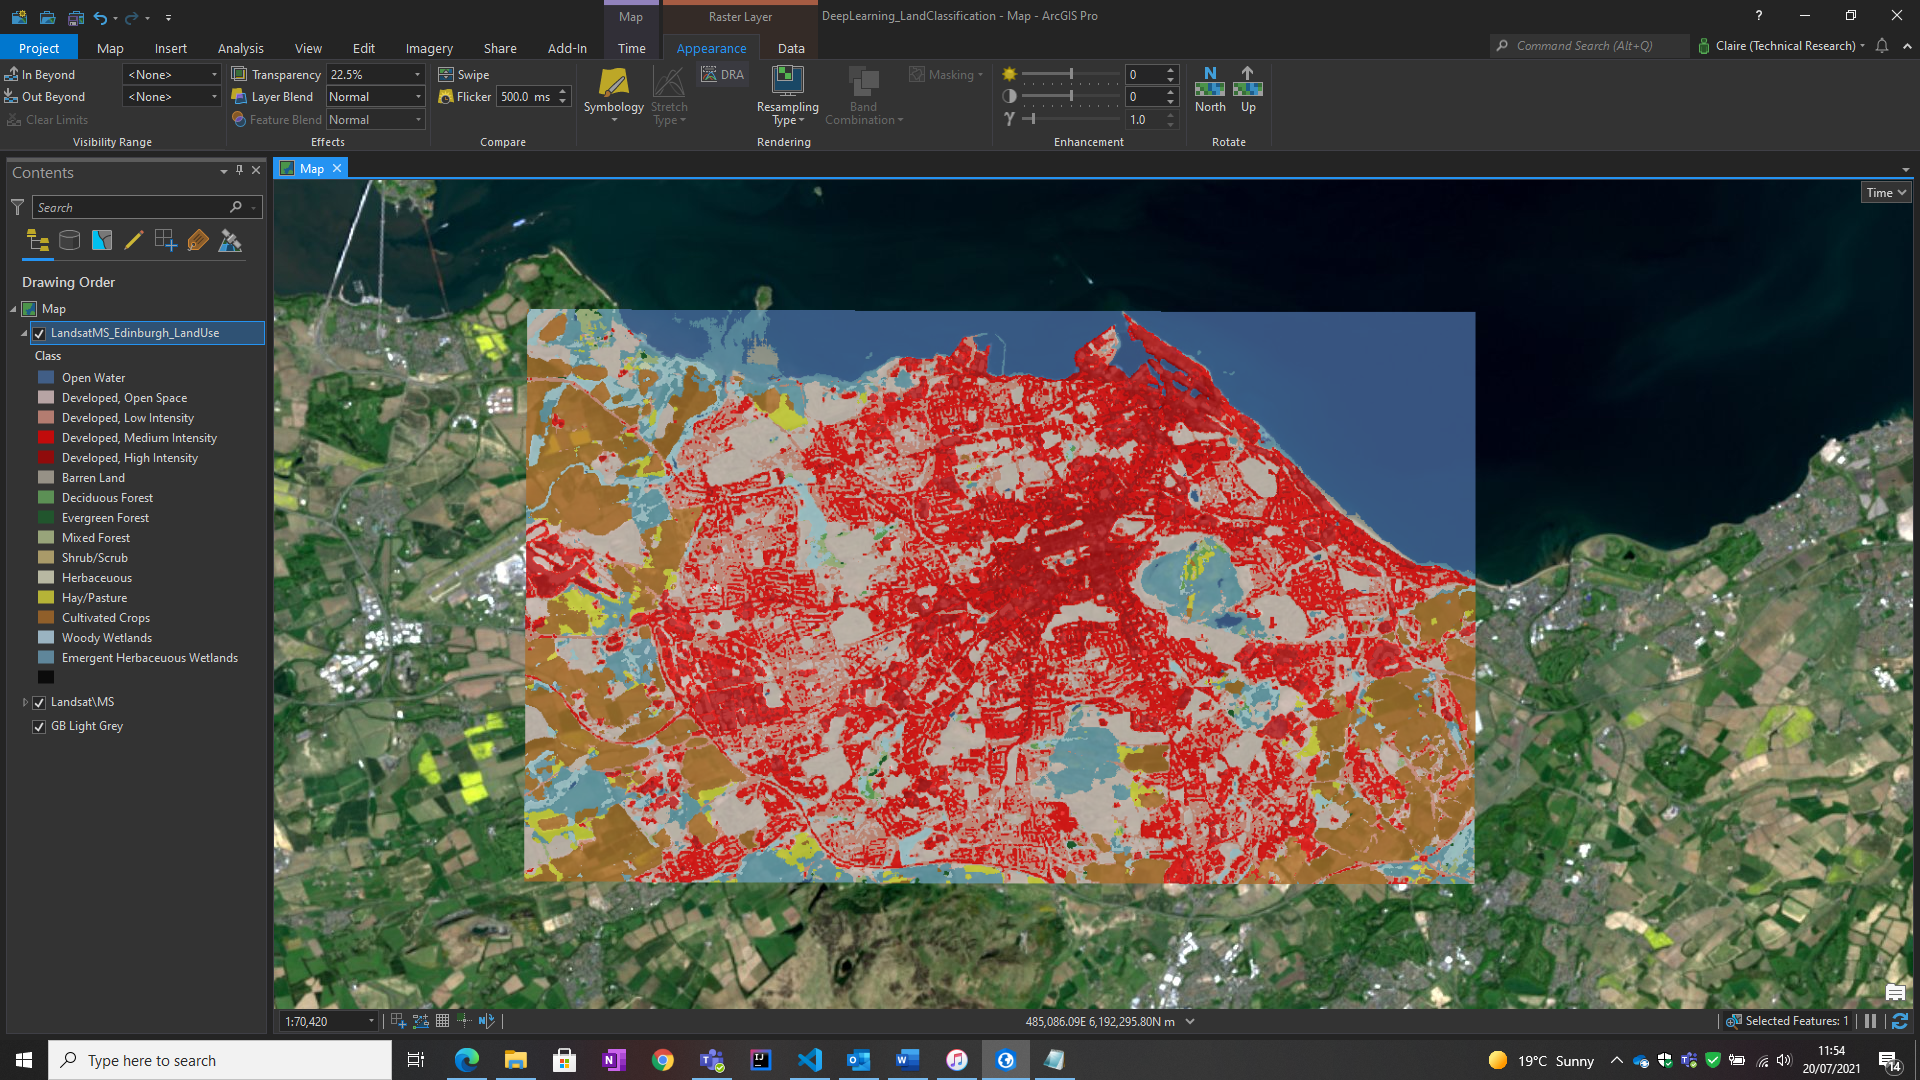 Land classification result in ArcGIS Pro